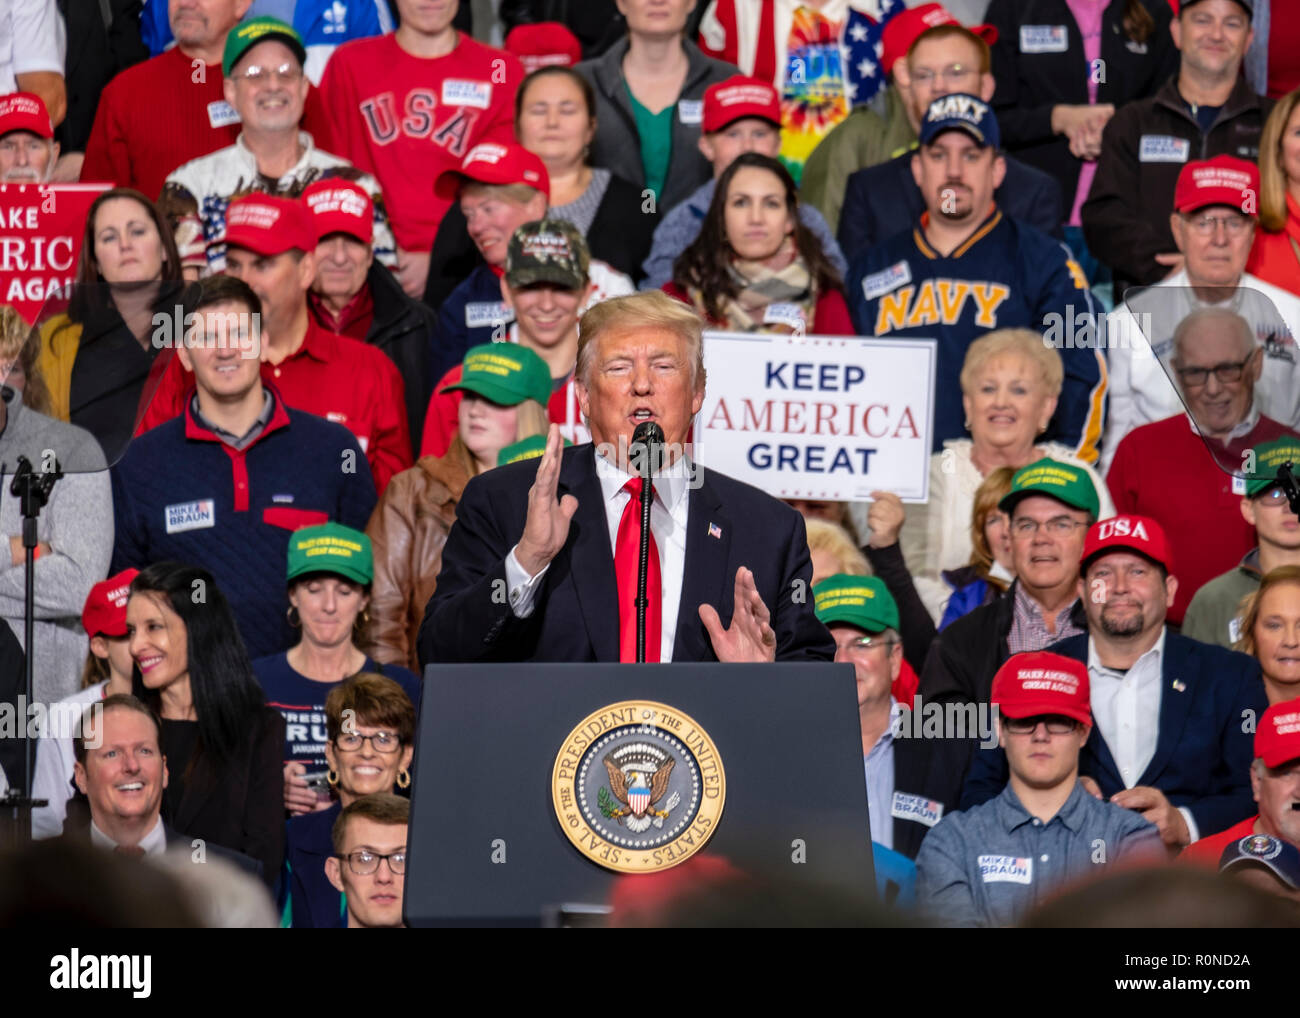 U.S President Donald Trump, addresses a rally of supporters on the eve of mid-term elections at Southport High School November 2, 2018 in Southport, Indiana. - Stock Image